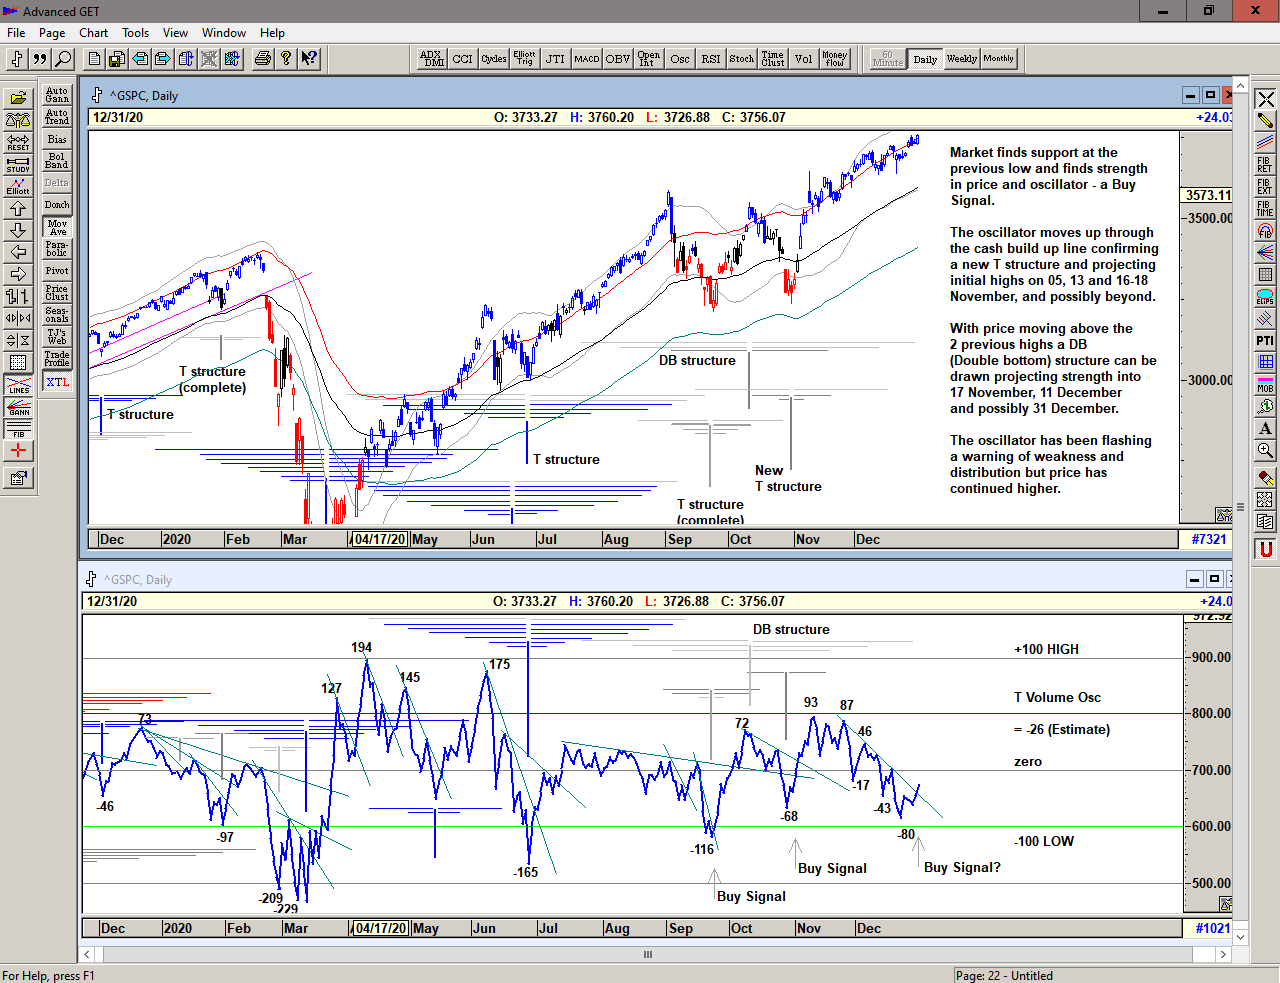 Chart of S&P 500 with T volume oscillator for 04 January 2021